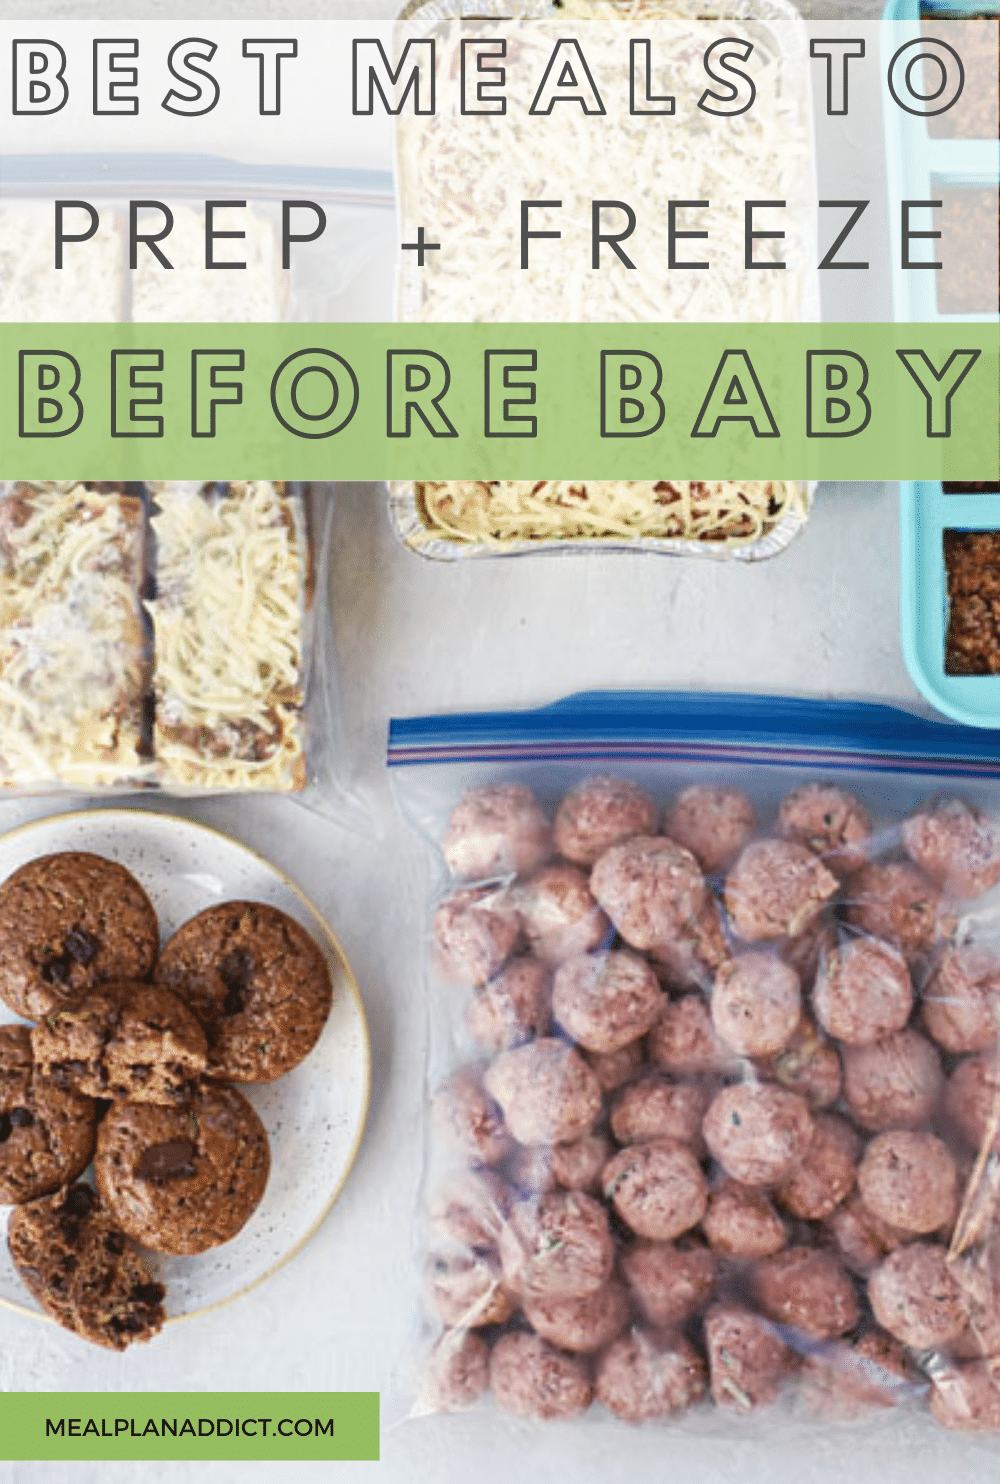 Easy Meals To Prep and Freeze Before Baby | Meal Plan Addict